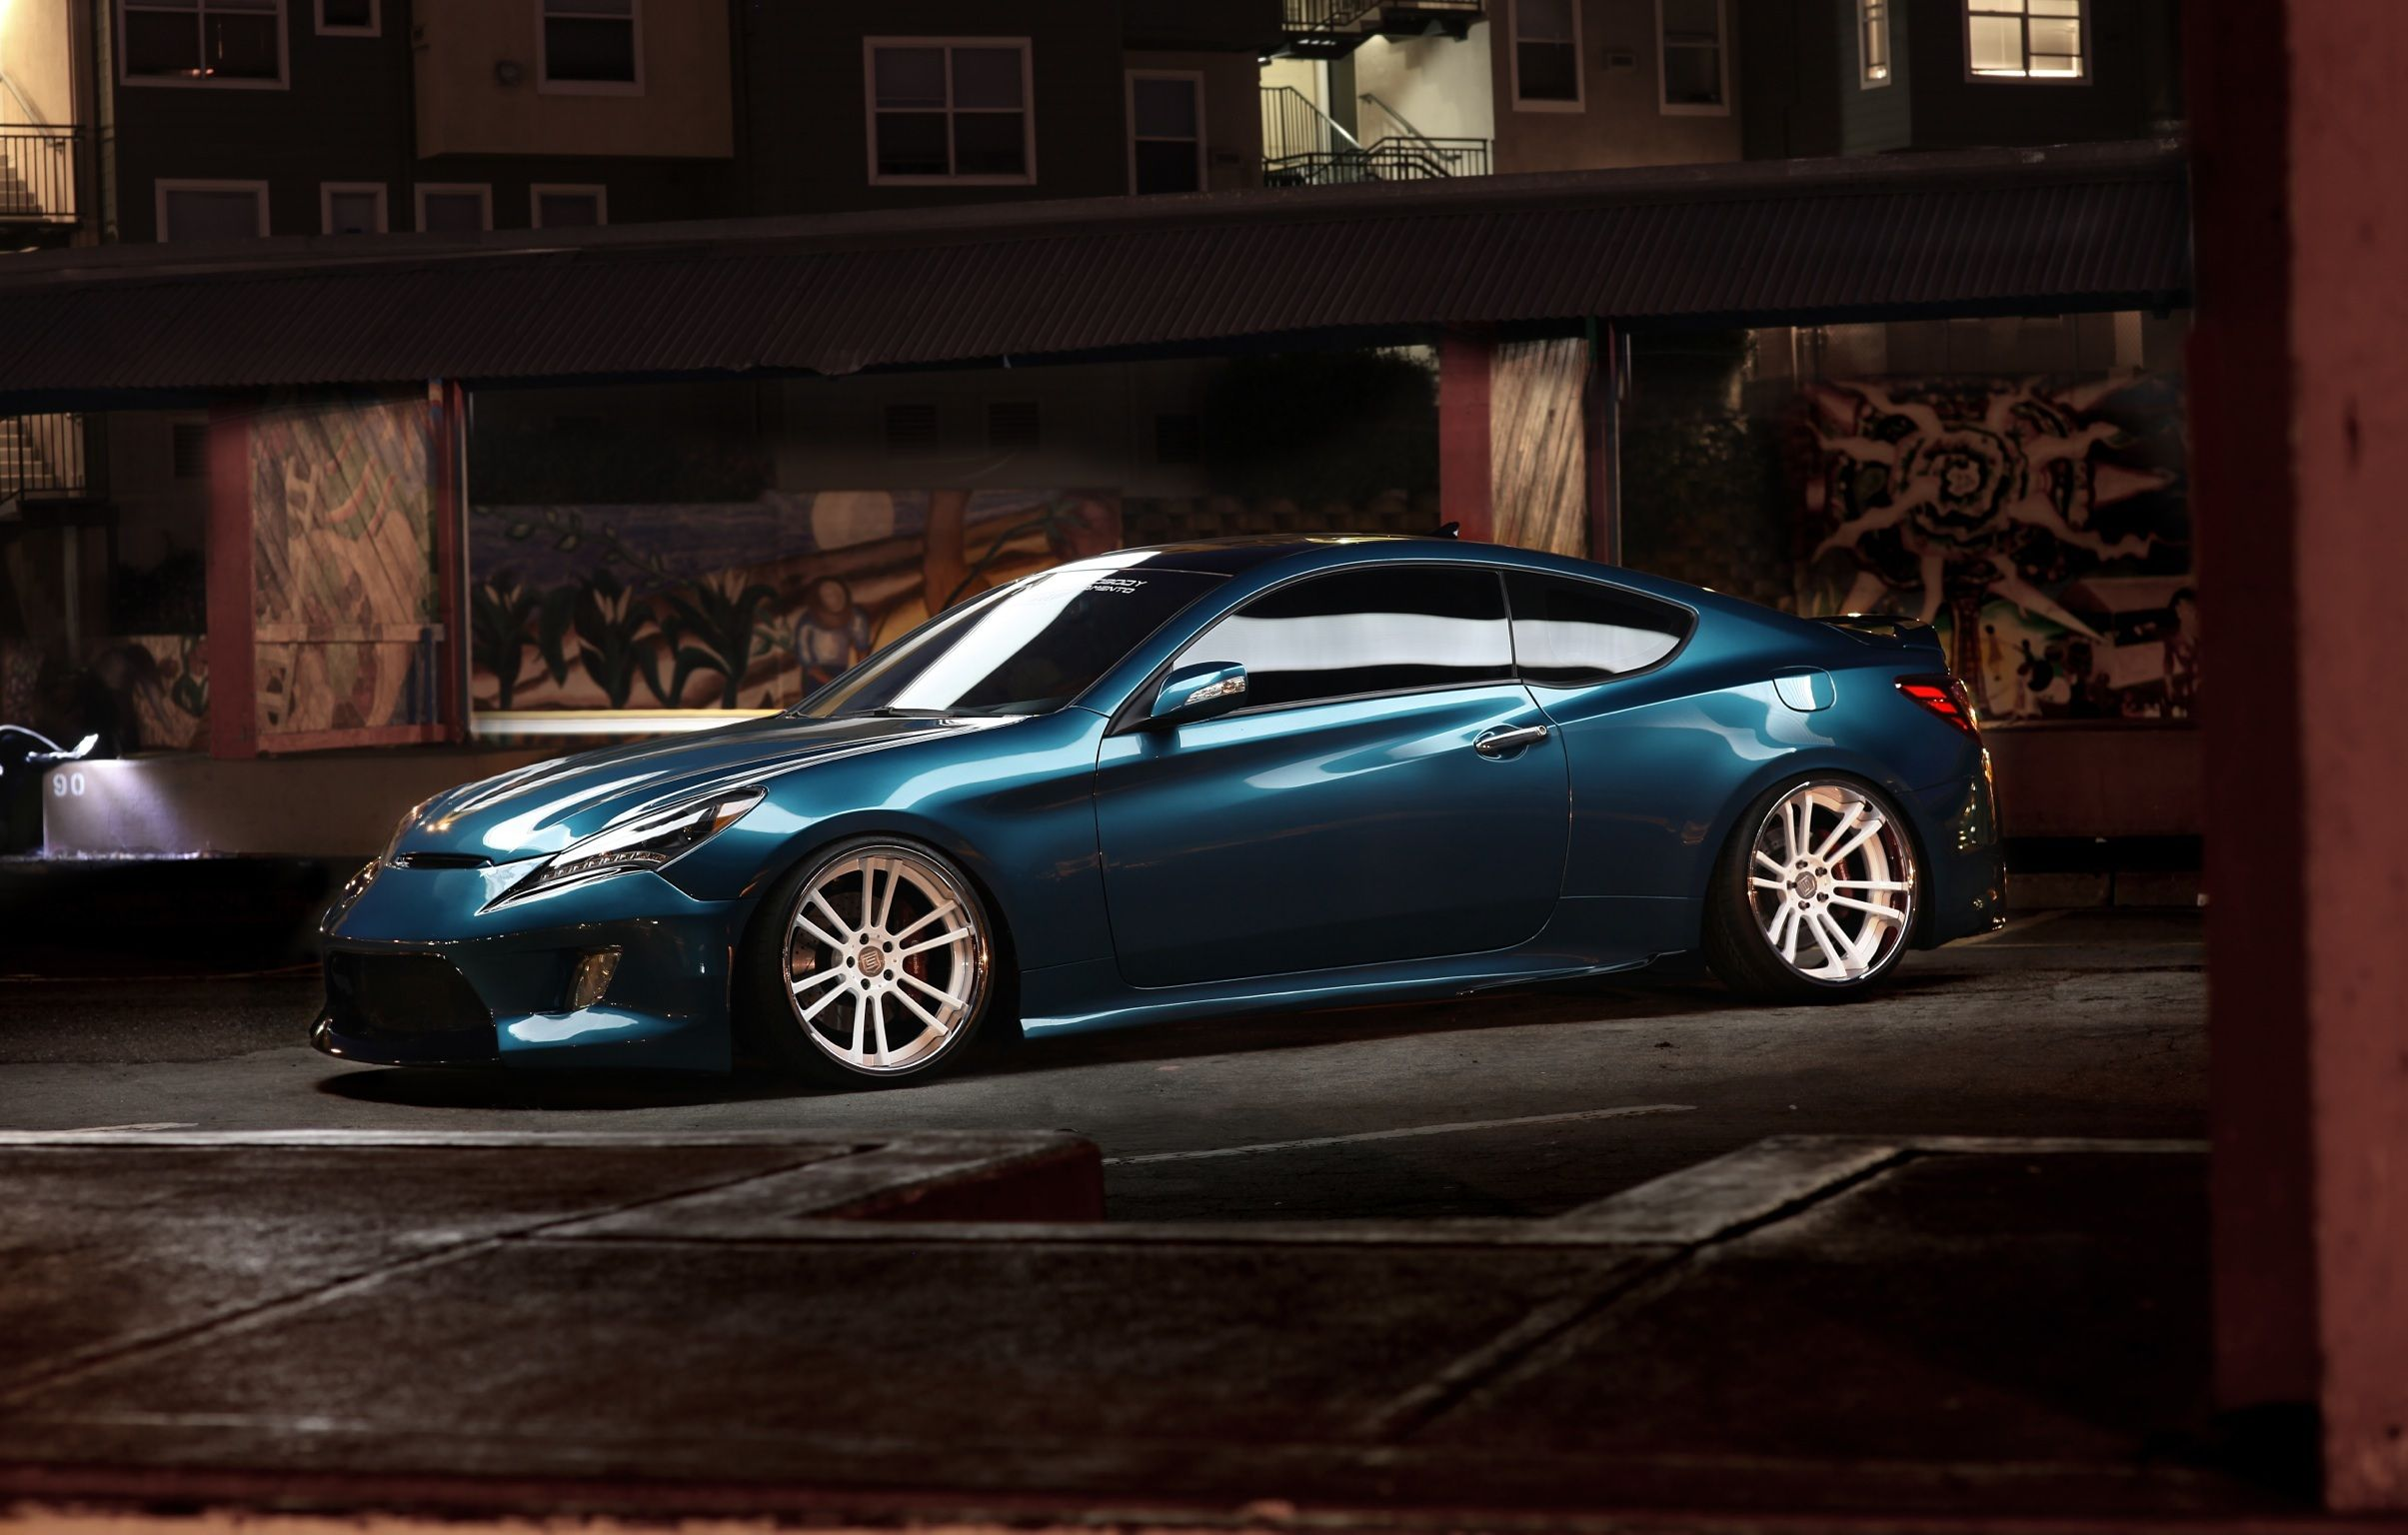 Blackrain s 3 8 genesis coupe gc tuner hyundai genesis coupe accessories and upgrades genesis love pinterest hyundai genesis coupe hyundai genesis